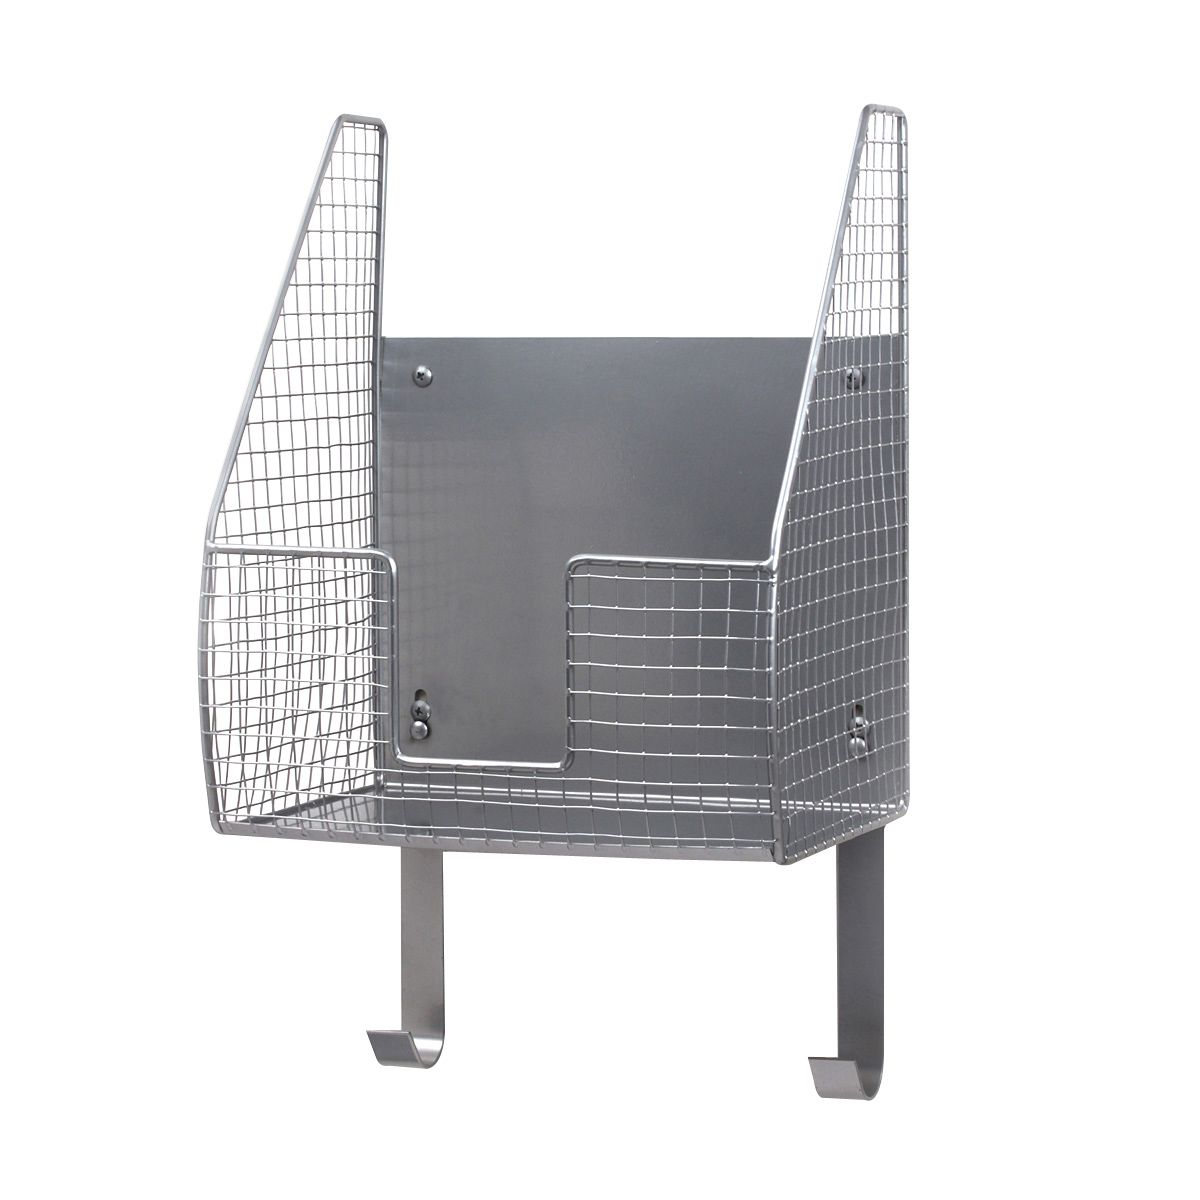 Spectrum Diversified Ironing Board Holder With Storage Basket Heat Resistant Ironing Board Holder Open Wire Storage Basket Laundry Room Decor Organization In 2020 Wire Basket Storage Storage Baskets Ironing Board Holder